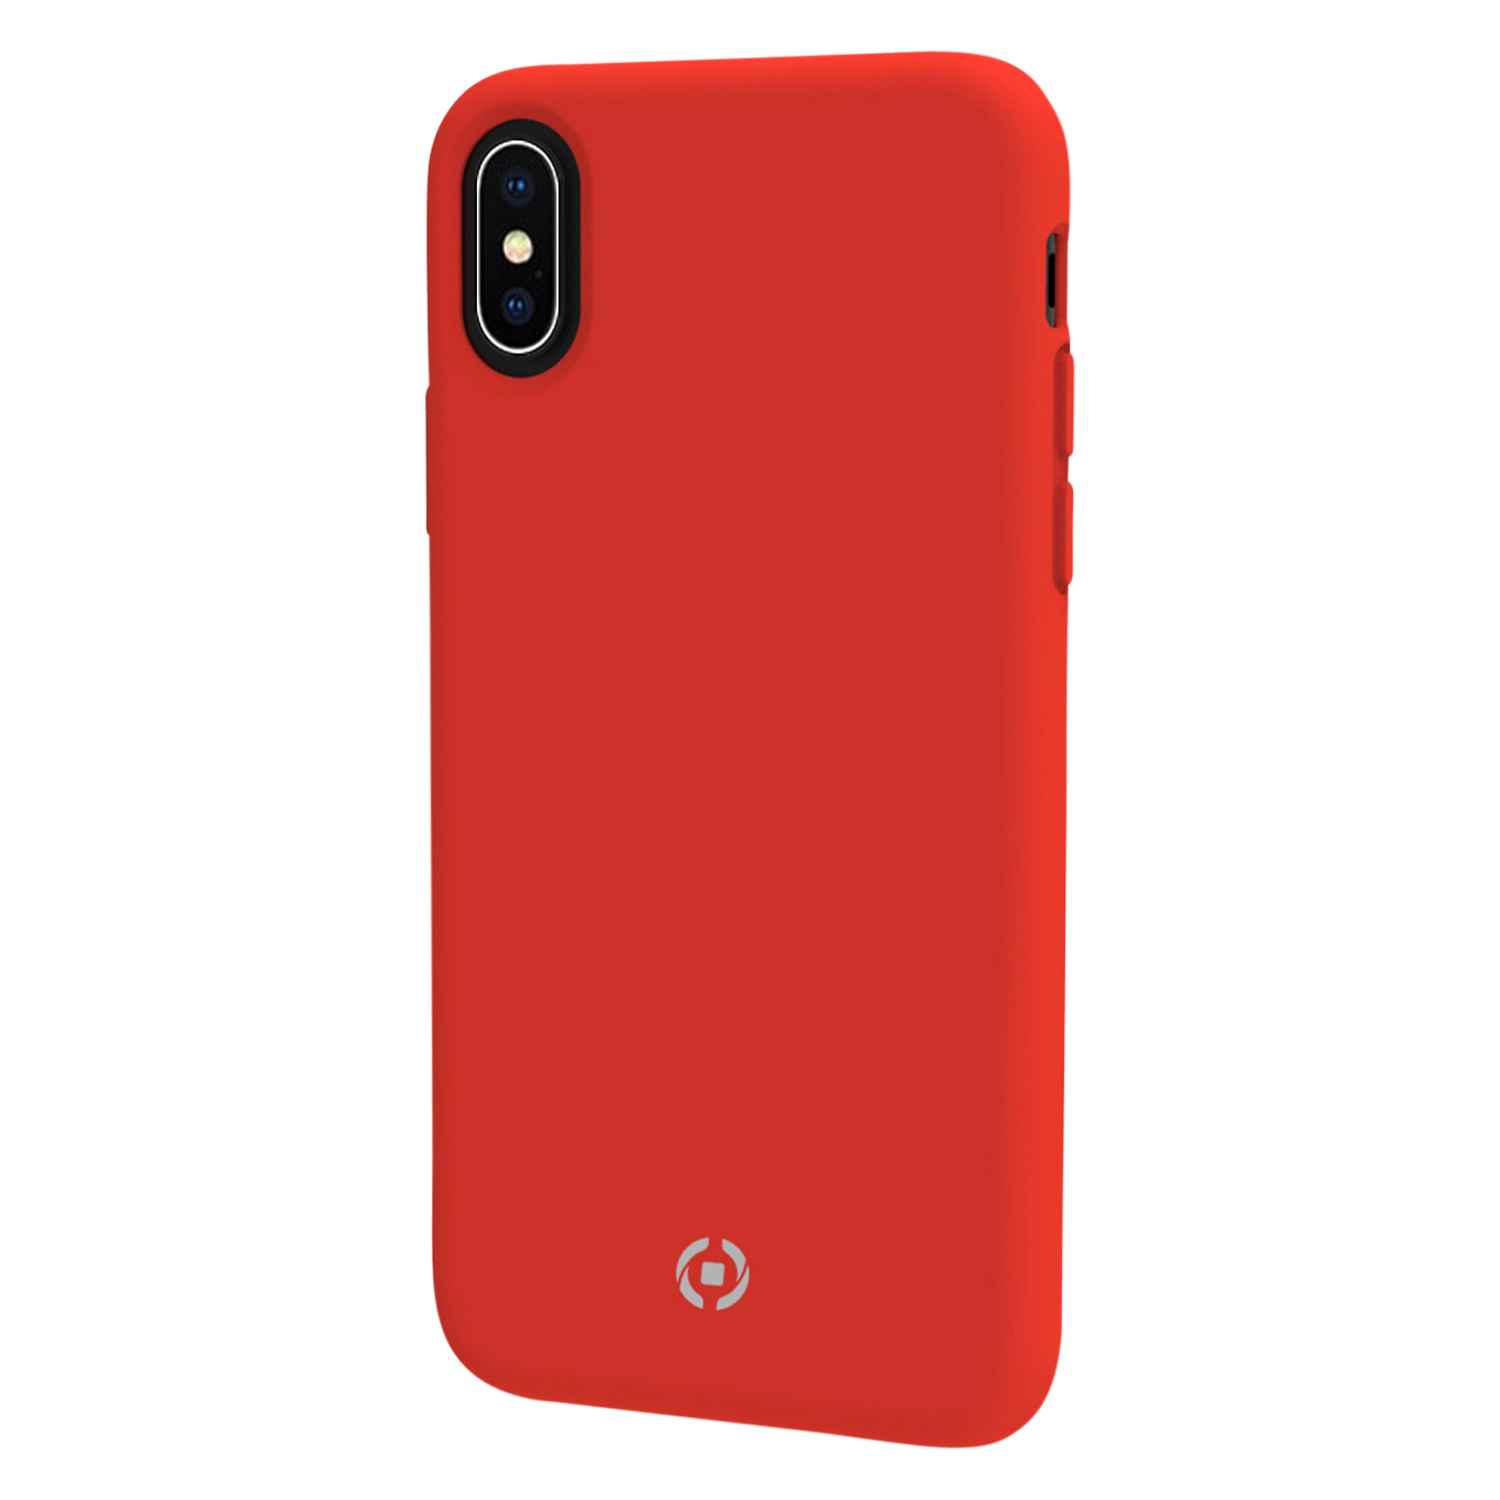 Celly Backcover Feeling iPhone X/XS FEELING900RD BACKCOVER ROT